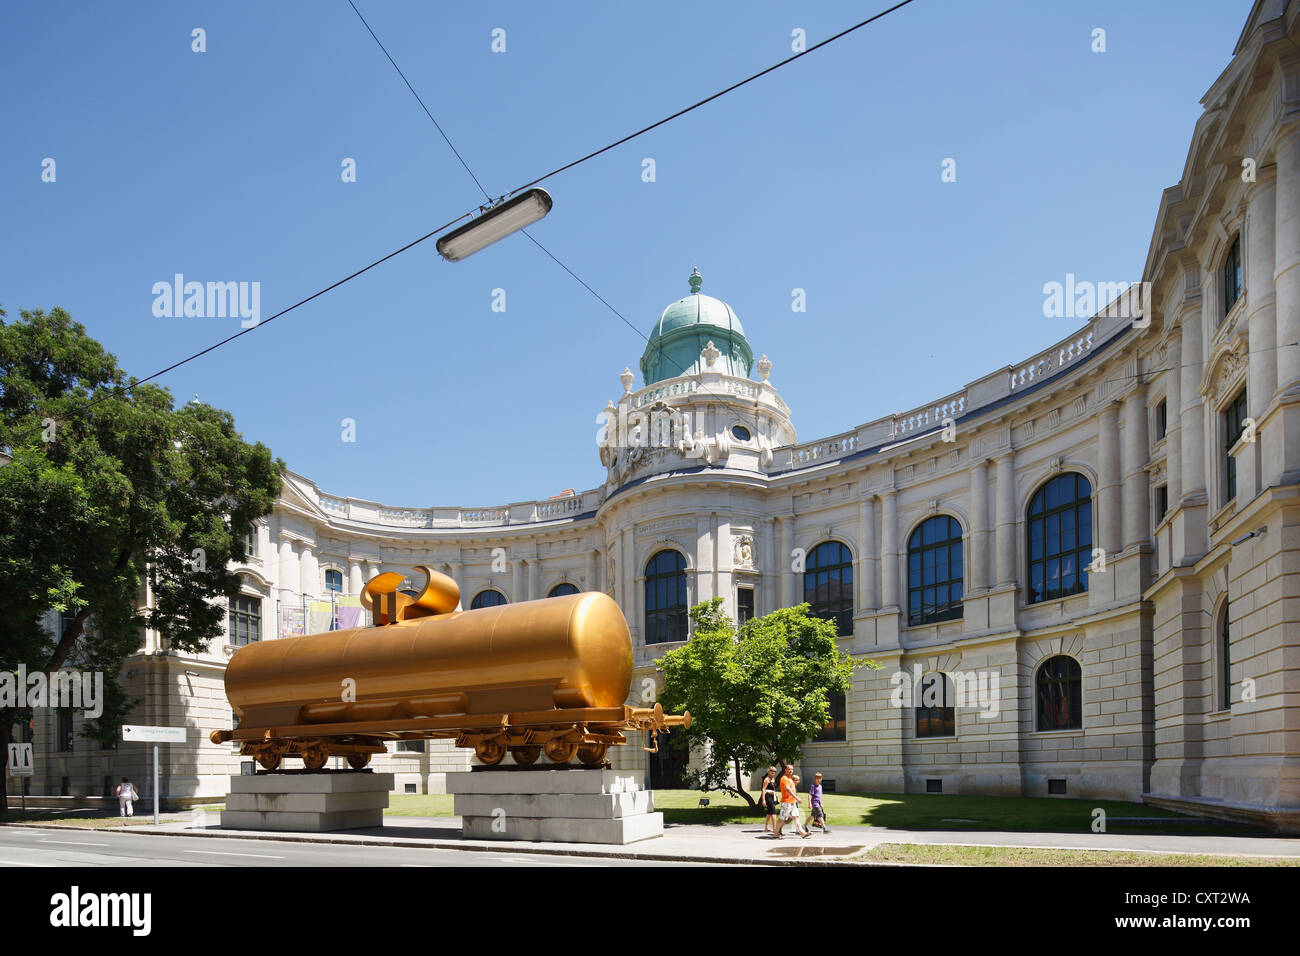 Installation The Golden Calf by Hans Hollein, a tanker wagon in front of the Joanneum building, Joanneum Quarter, - Stock Image